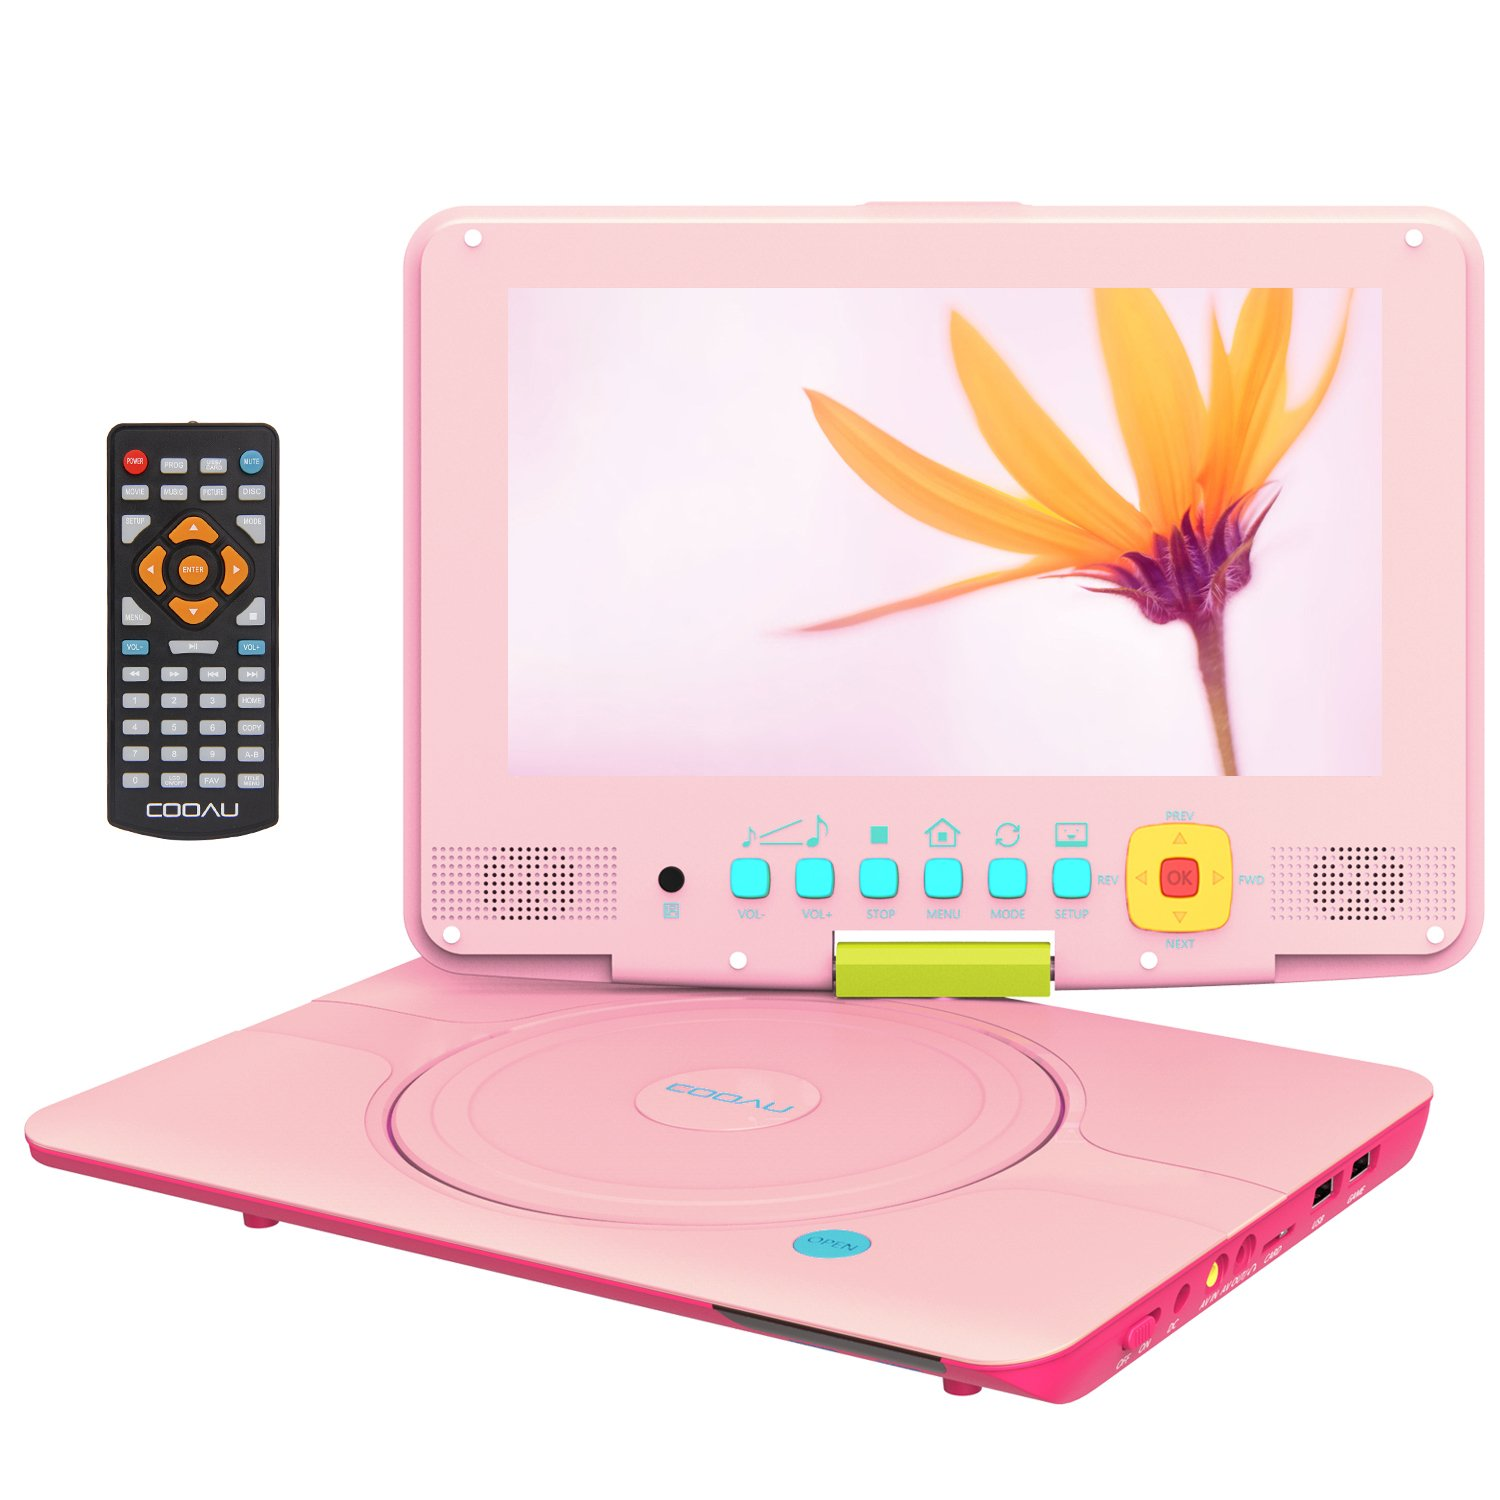 COOAU 12'' Kids Portable DVD Player with 9'' Swivel Screen, 5 Hours Rechargeable Battery, Remote Controller, Car Charger, Support TF Card/USB/Sync Screen/1080P Video Playback, Pink